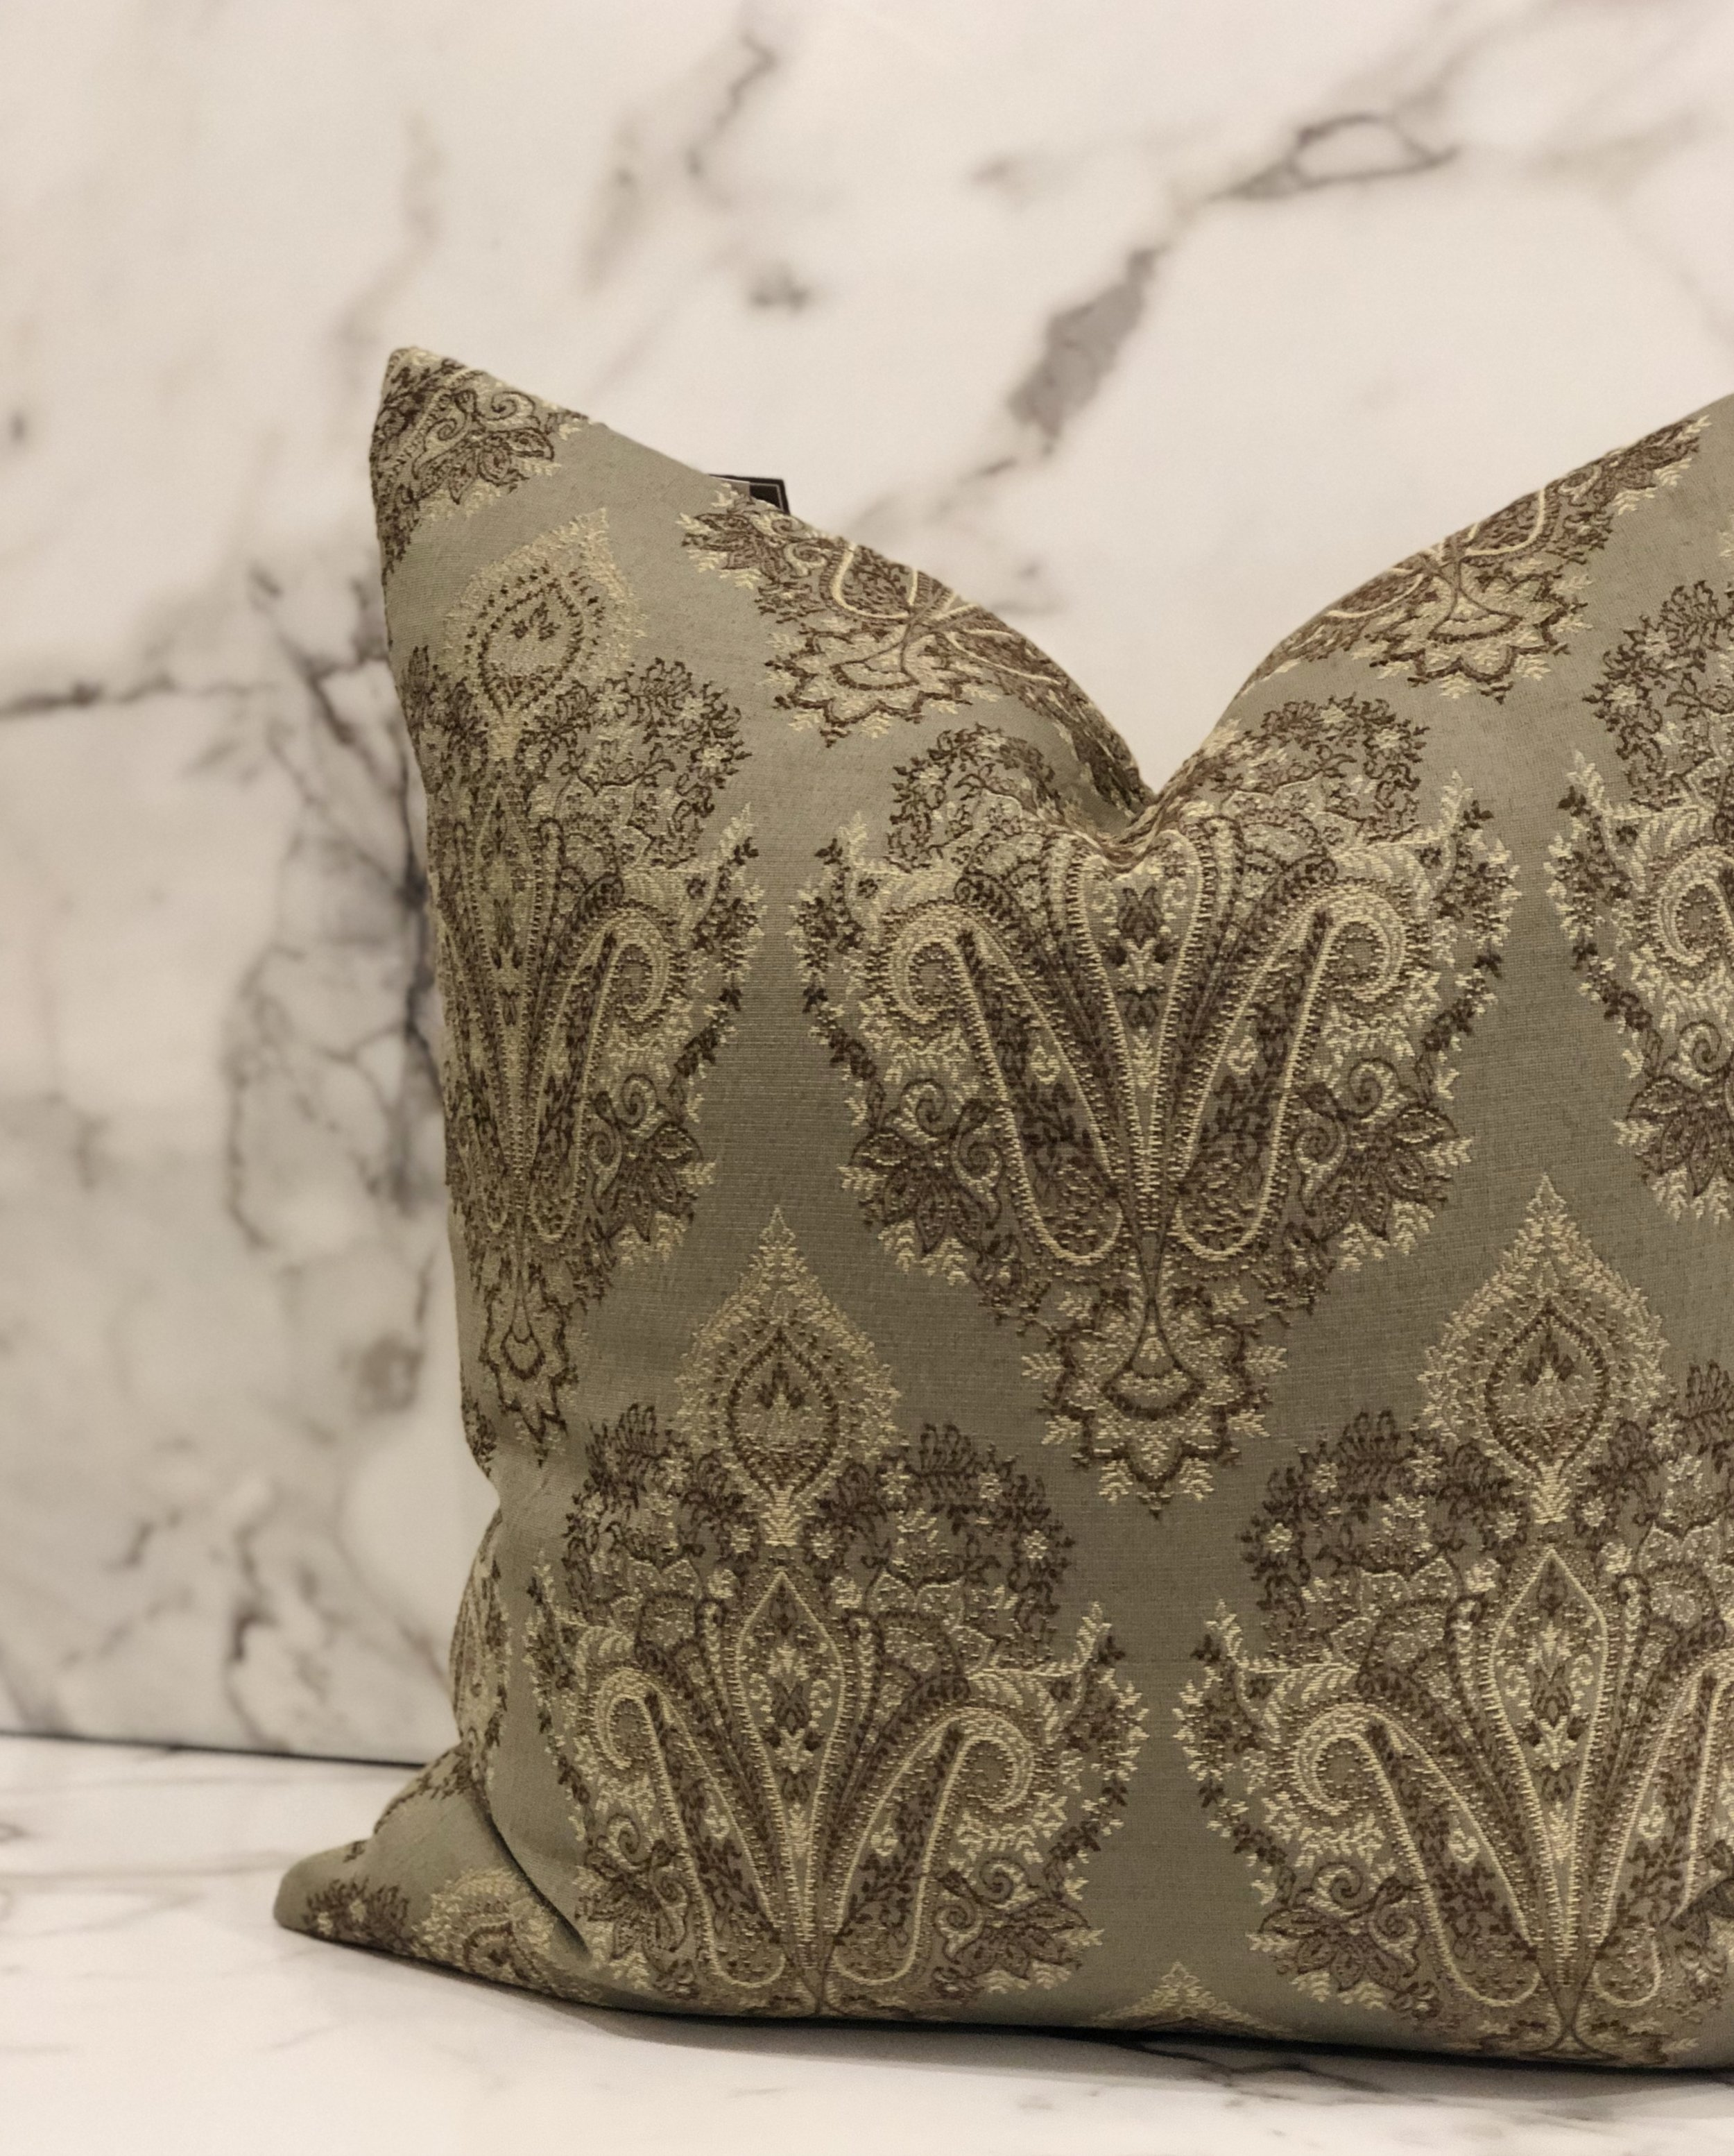 Embroidery - Embroidery is an art. It is completed by using a needle to thread yarn or string through another fabric. The results are breathtaking. Through embroidery you can get precise and detailed patterns and designs.Pillow - $74.95